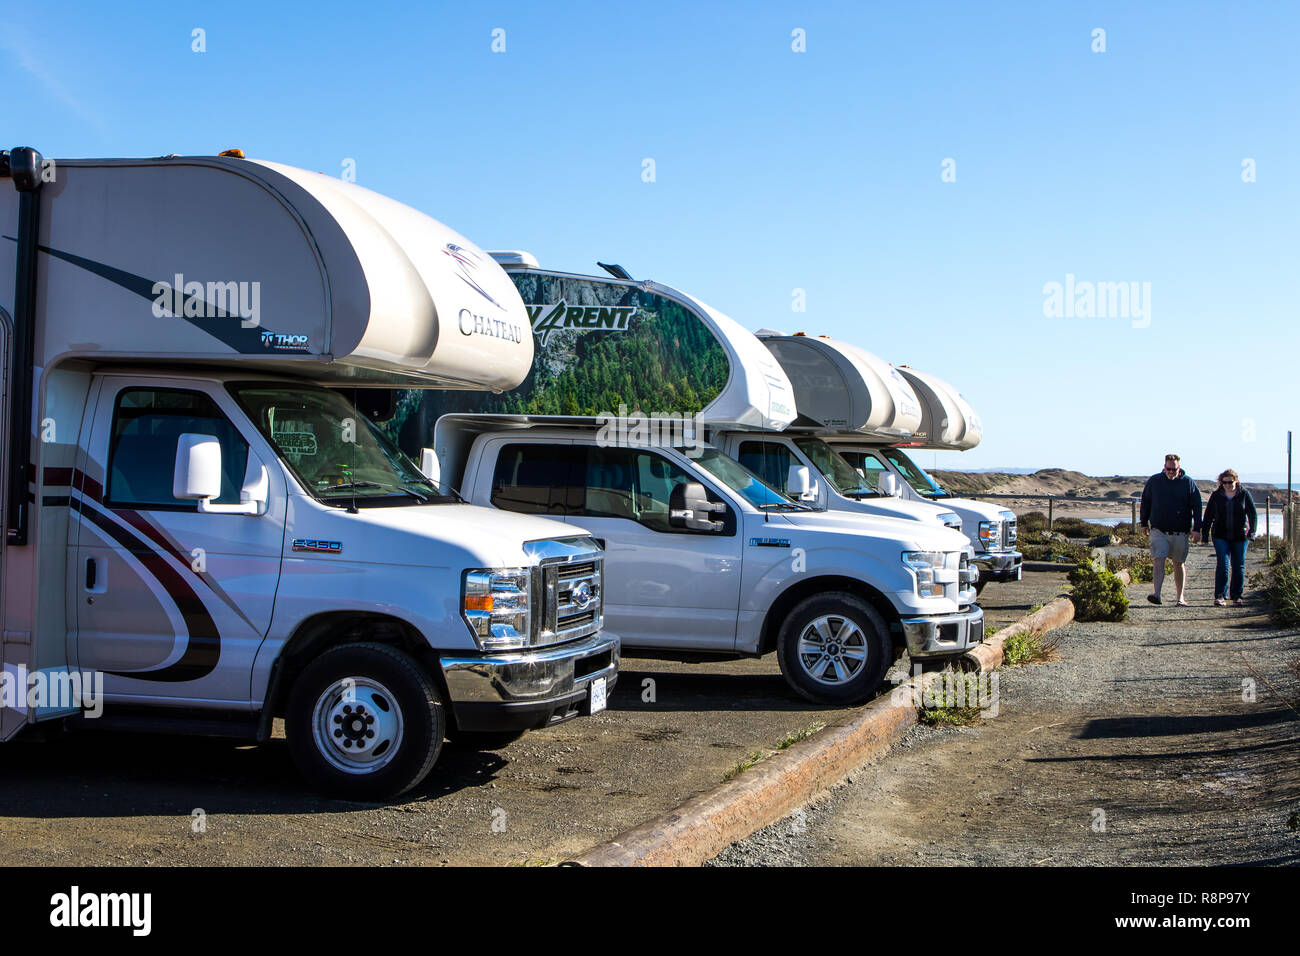 Row of RV's parked in parking lot off California Highway one (PCH